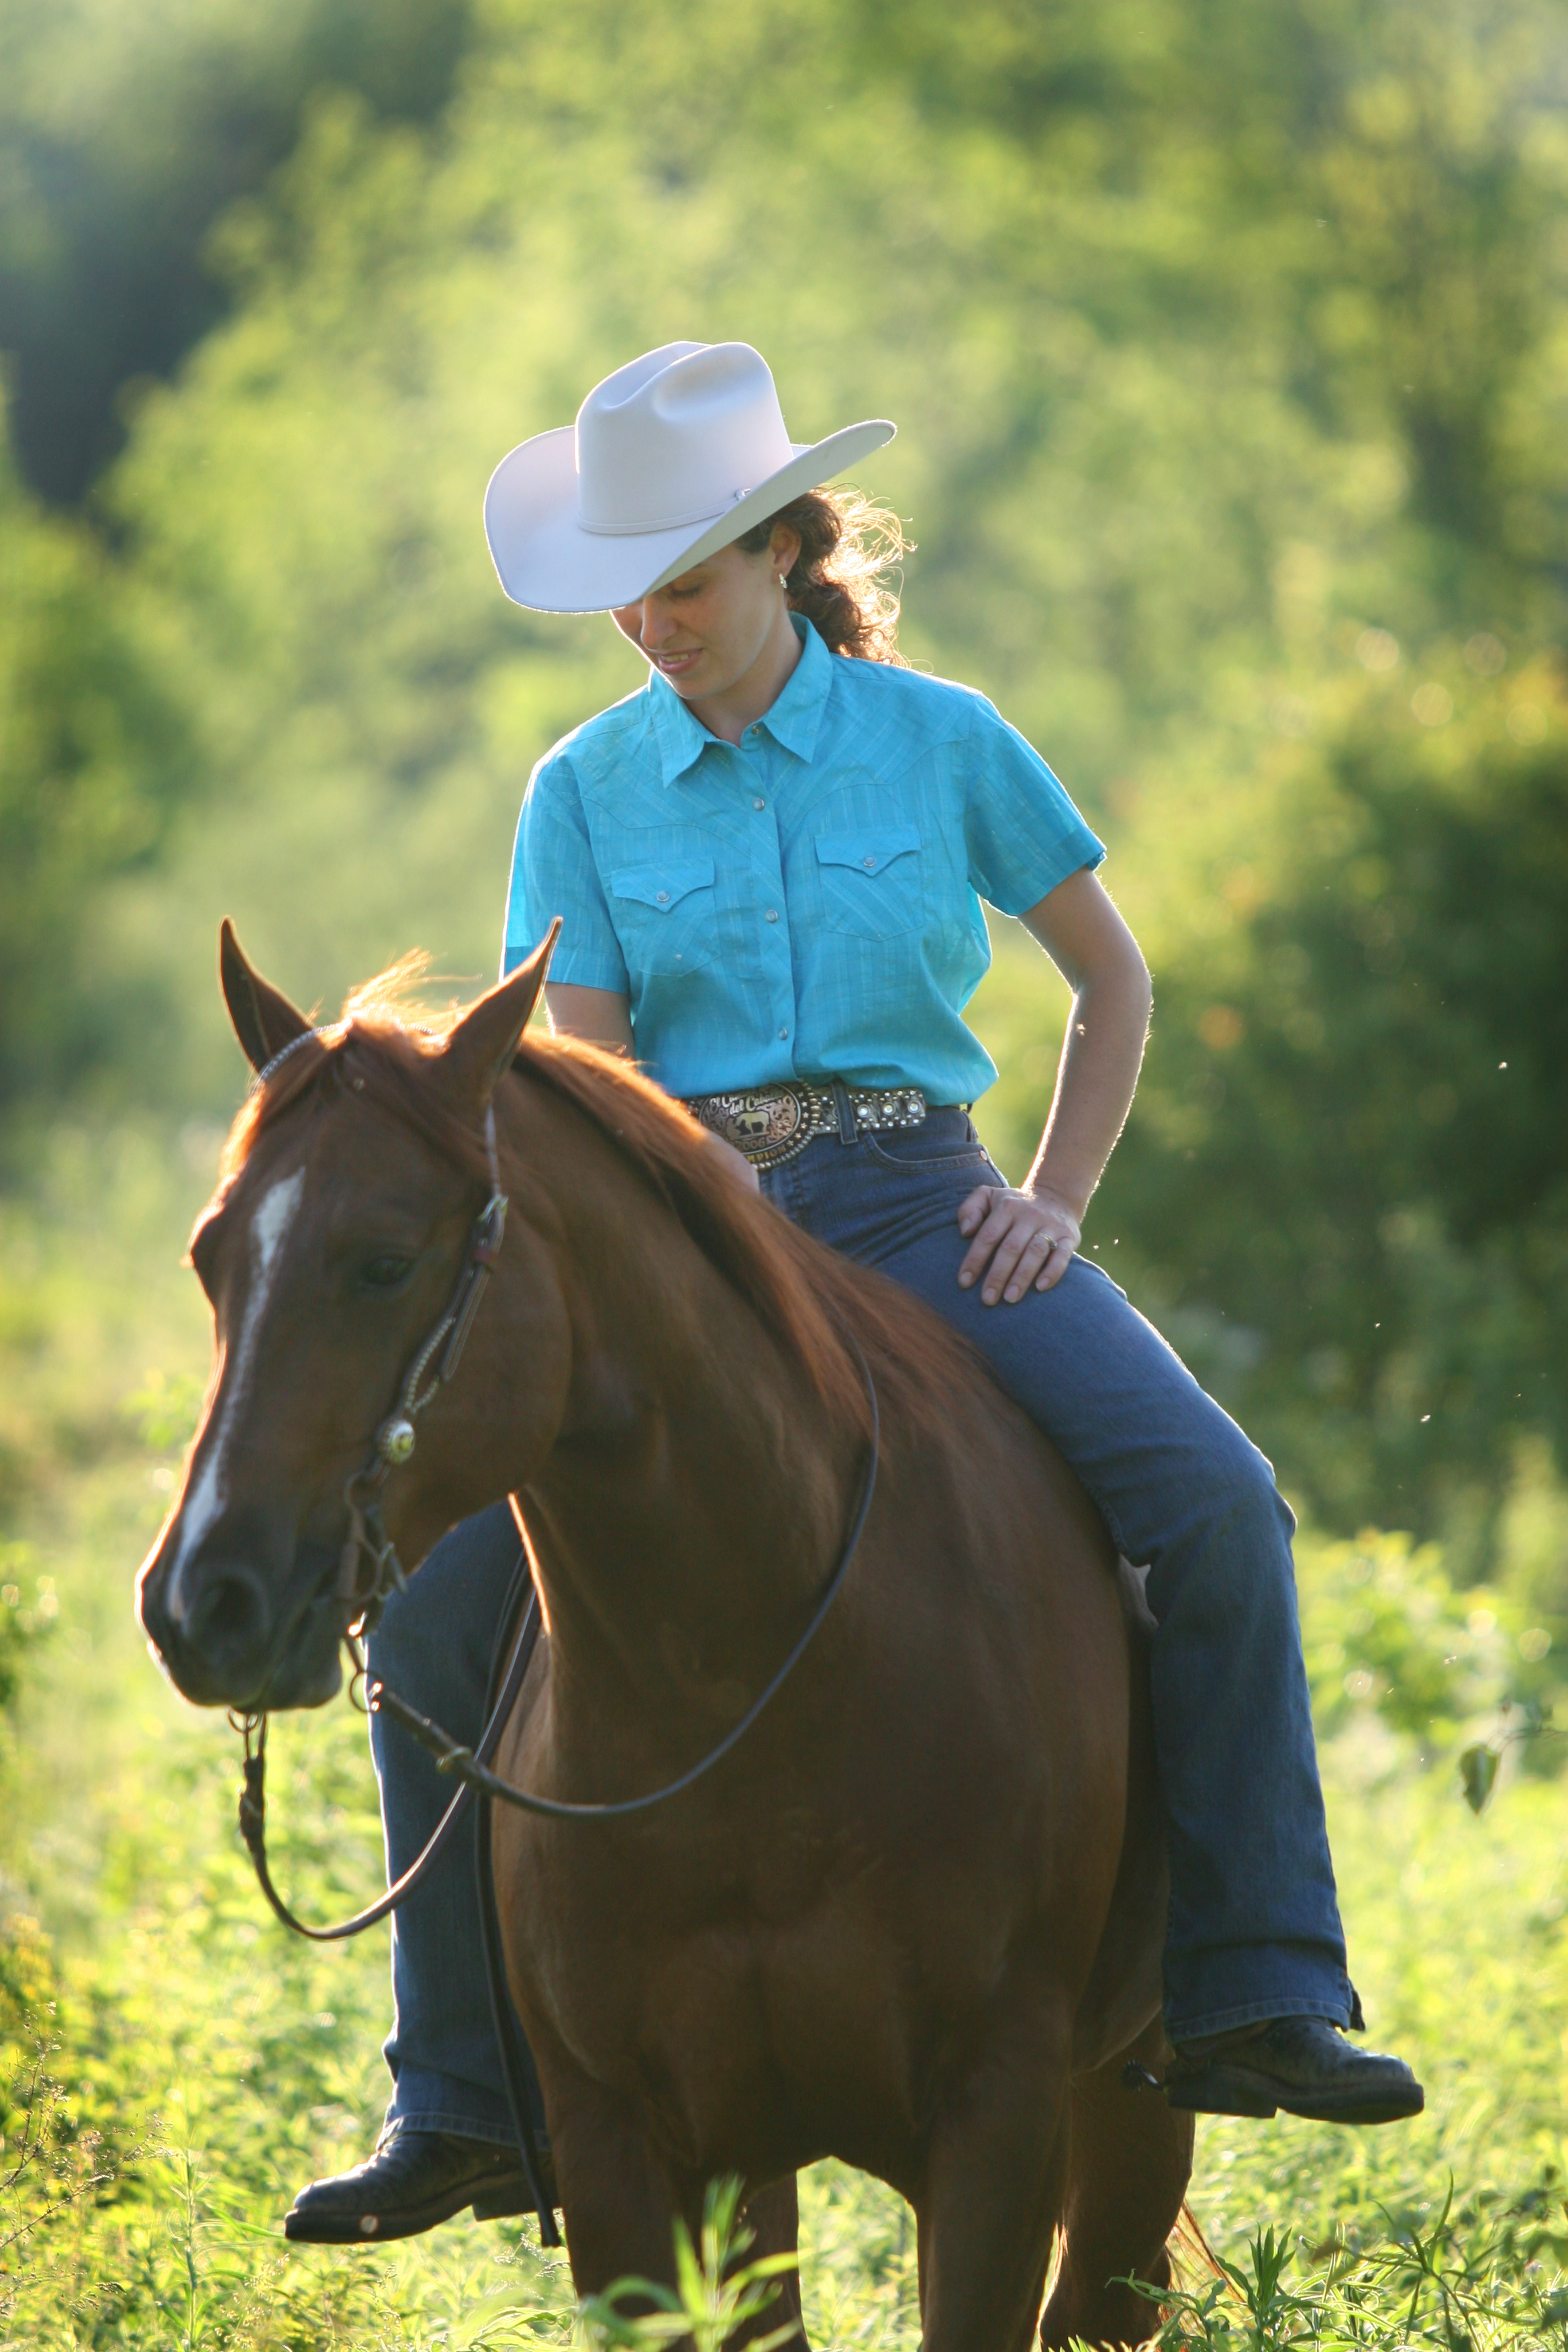 Connecting with your horse stacy westfall horseblog for West fall